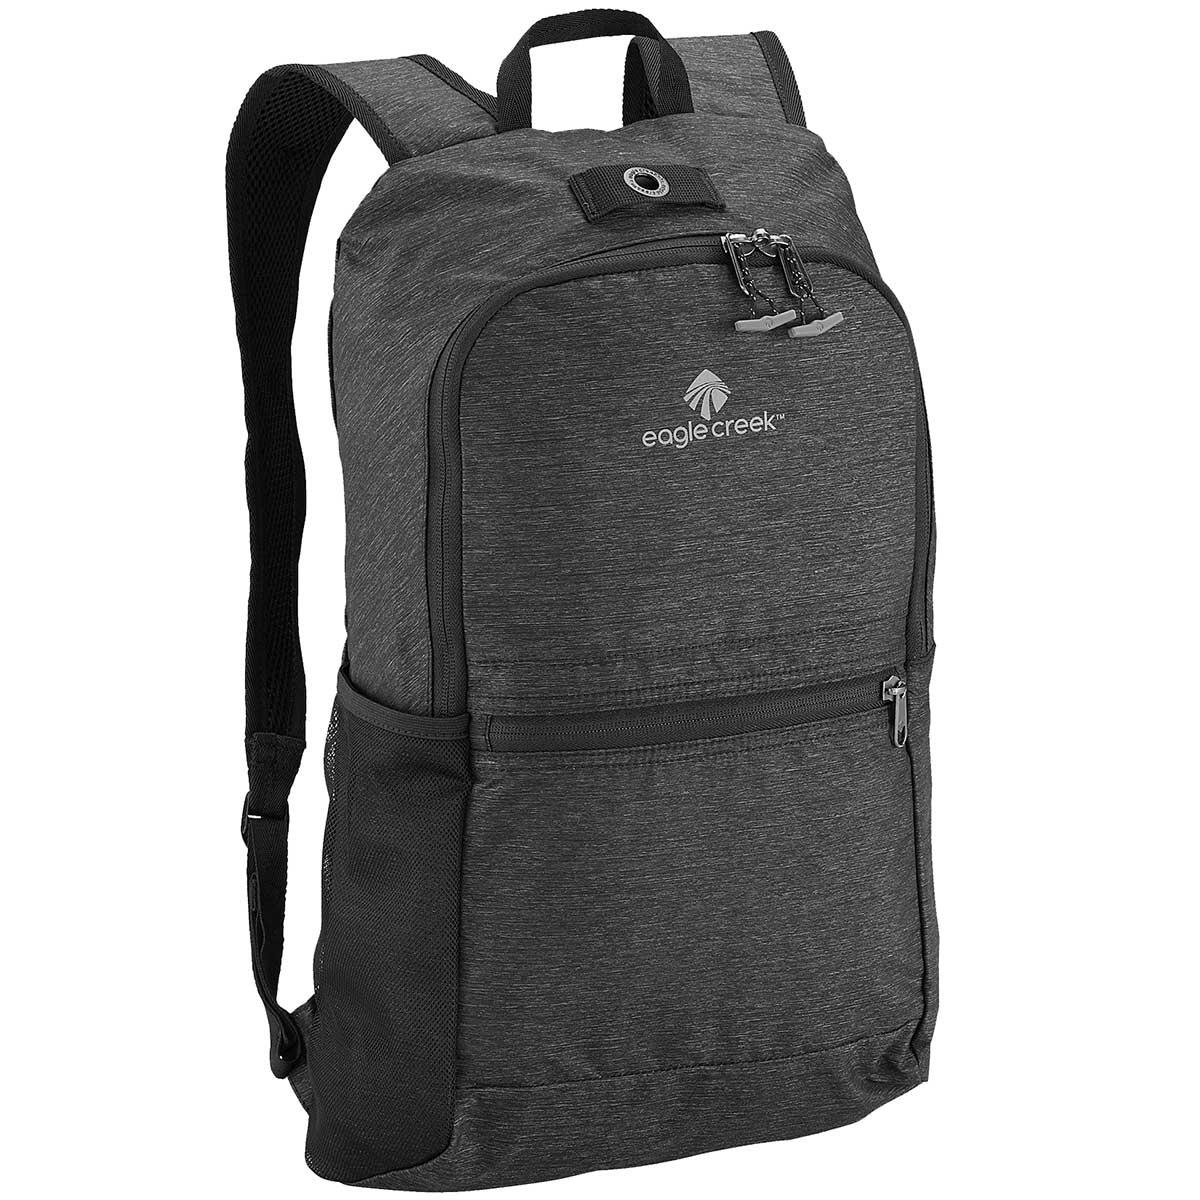 Eagle Creek Packable Daypack in Black